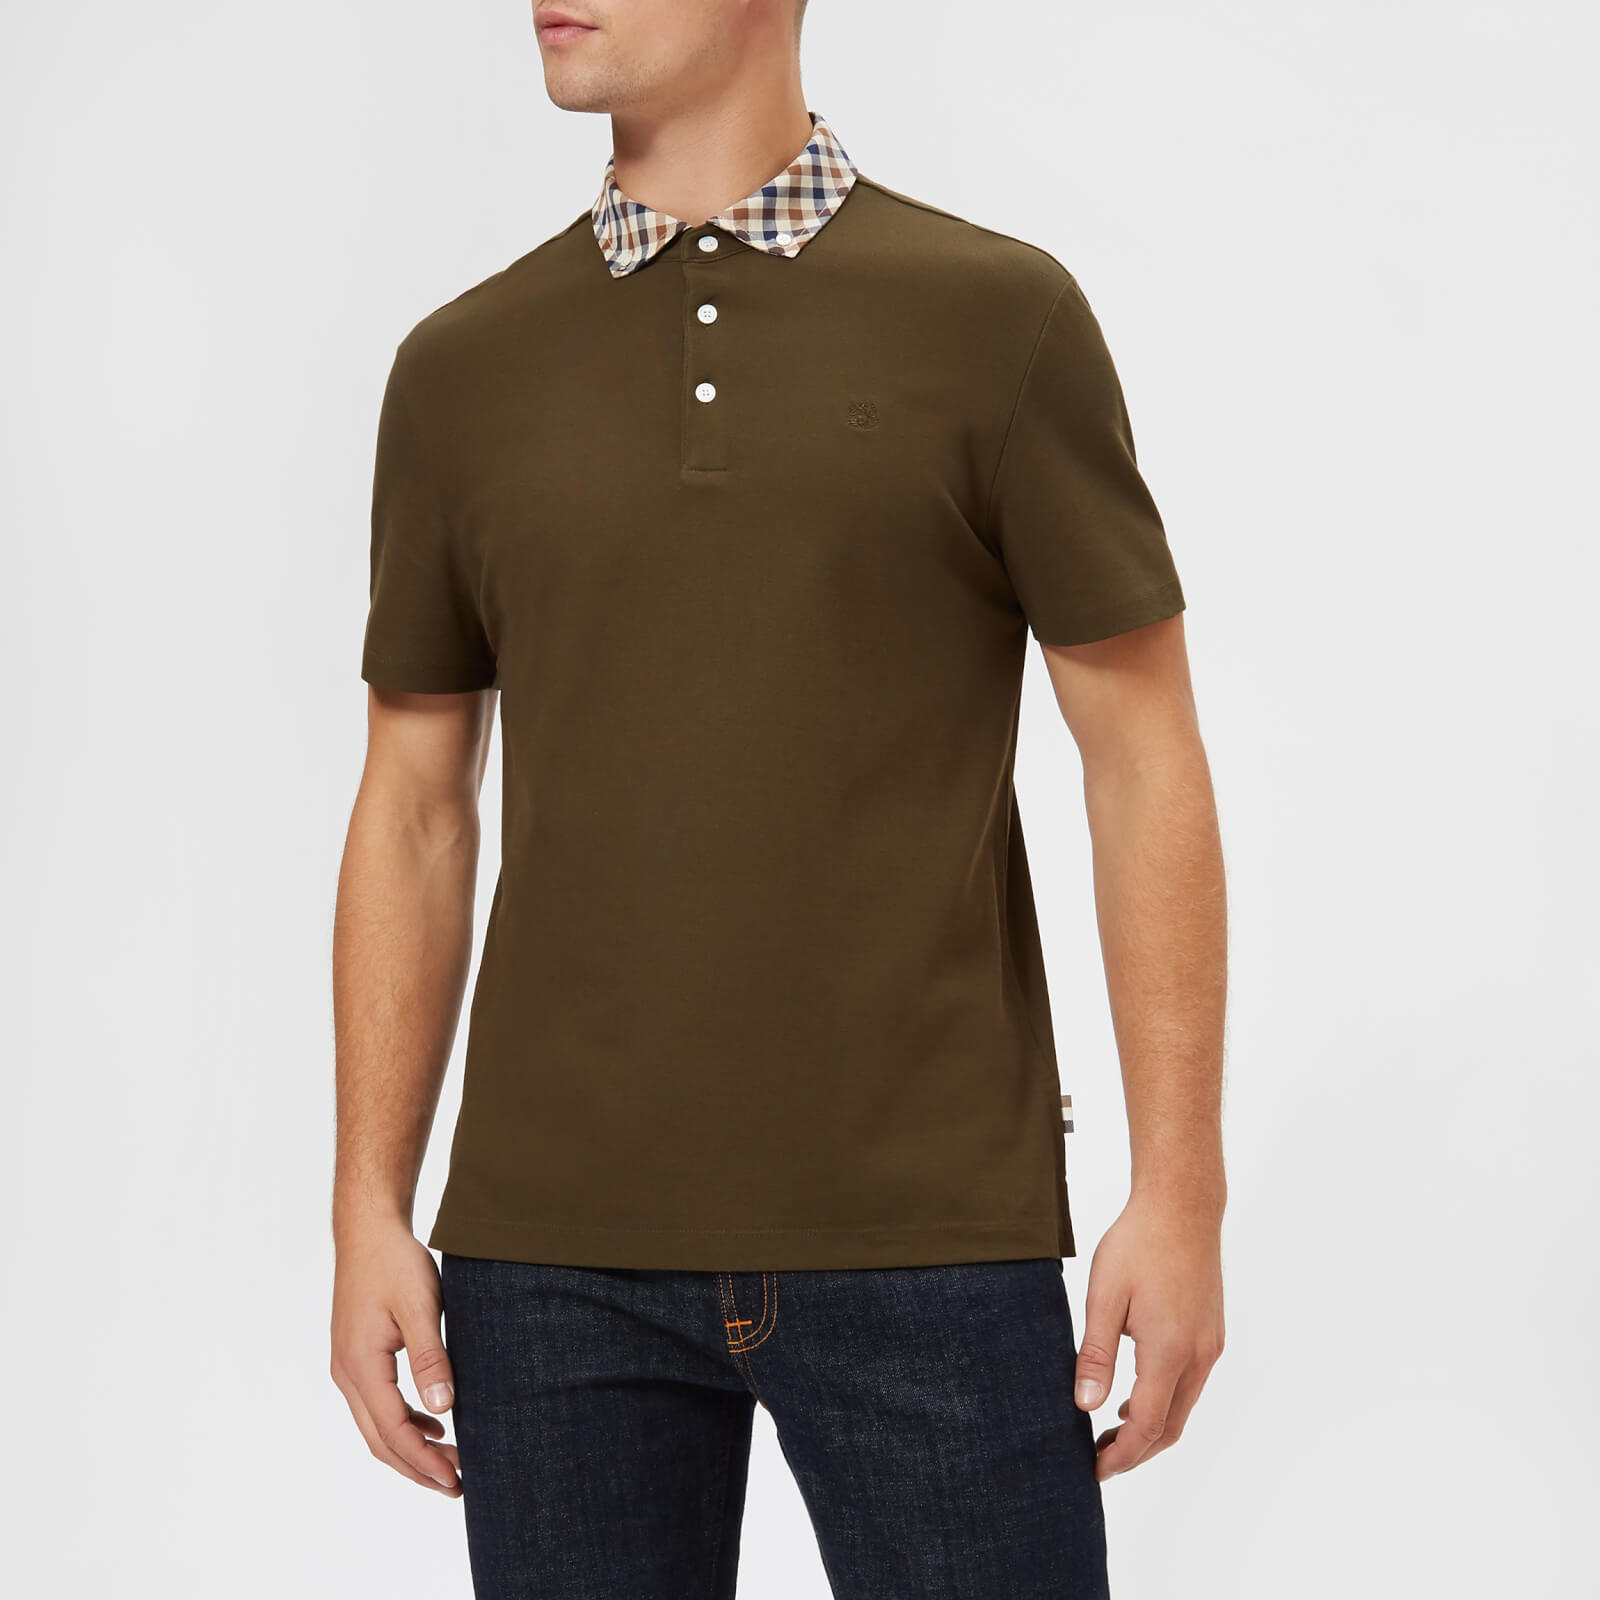 8cfd7cefb Aquascutum Men's Coniston Short Sleeve Club Check Collar Polo Shirt -  Military Green - Free UK Delivery over £50